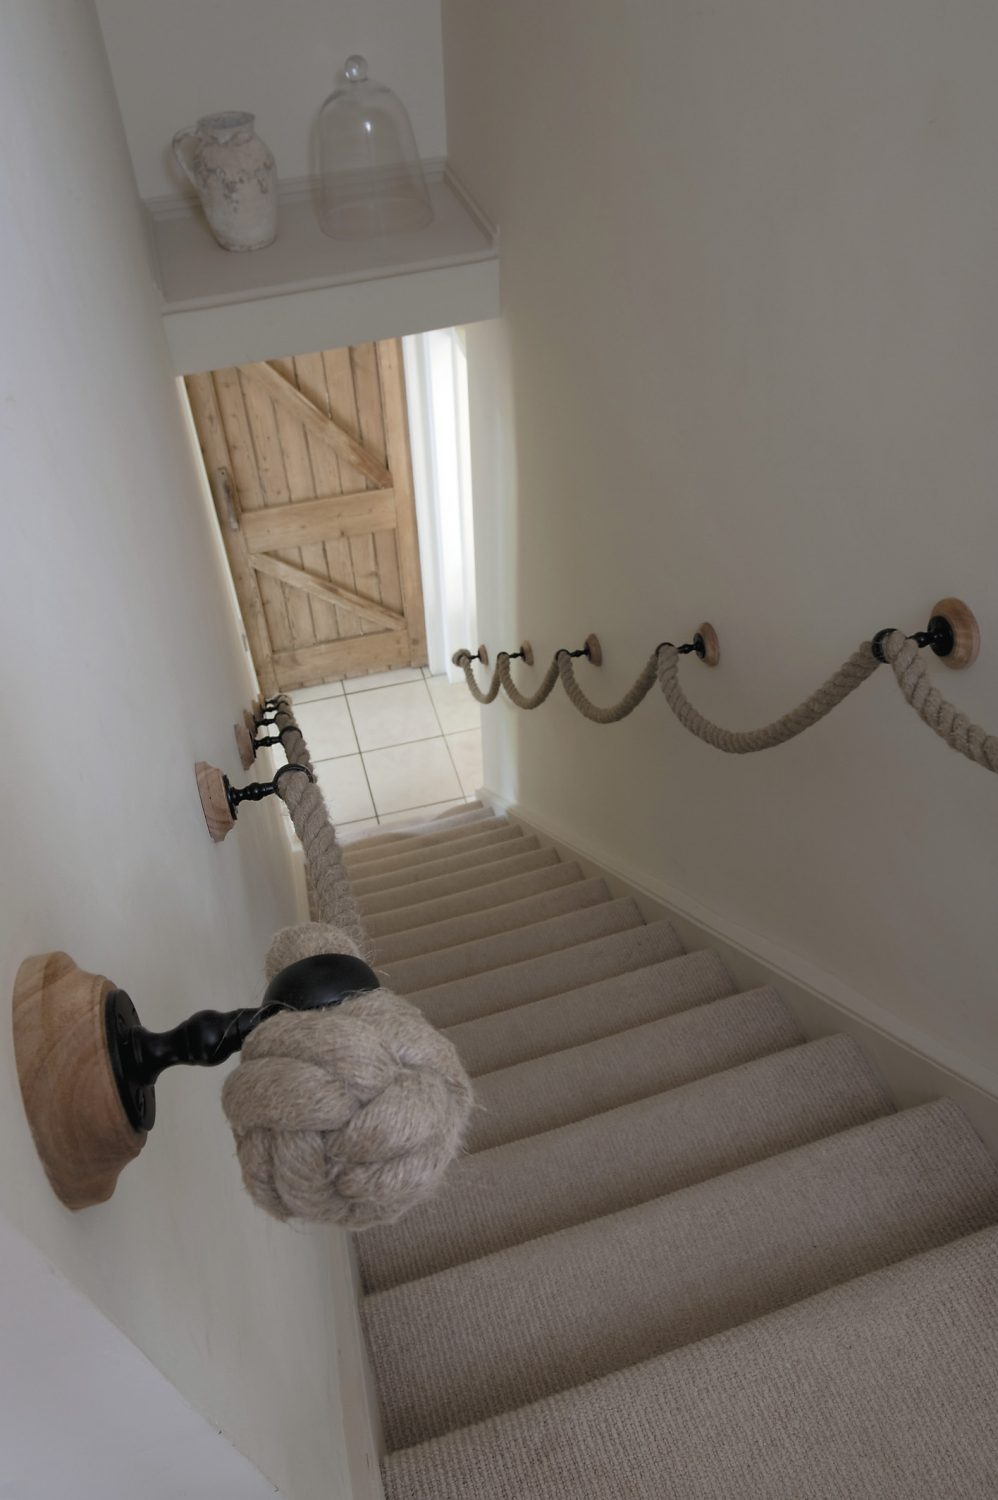 The staircase leads from the internal hallway